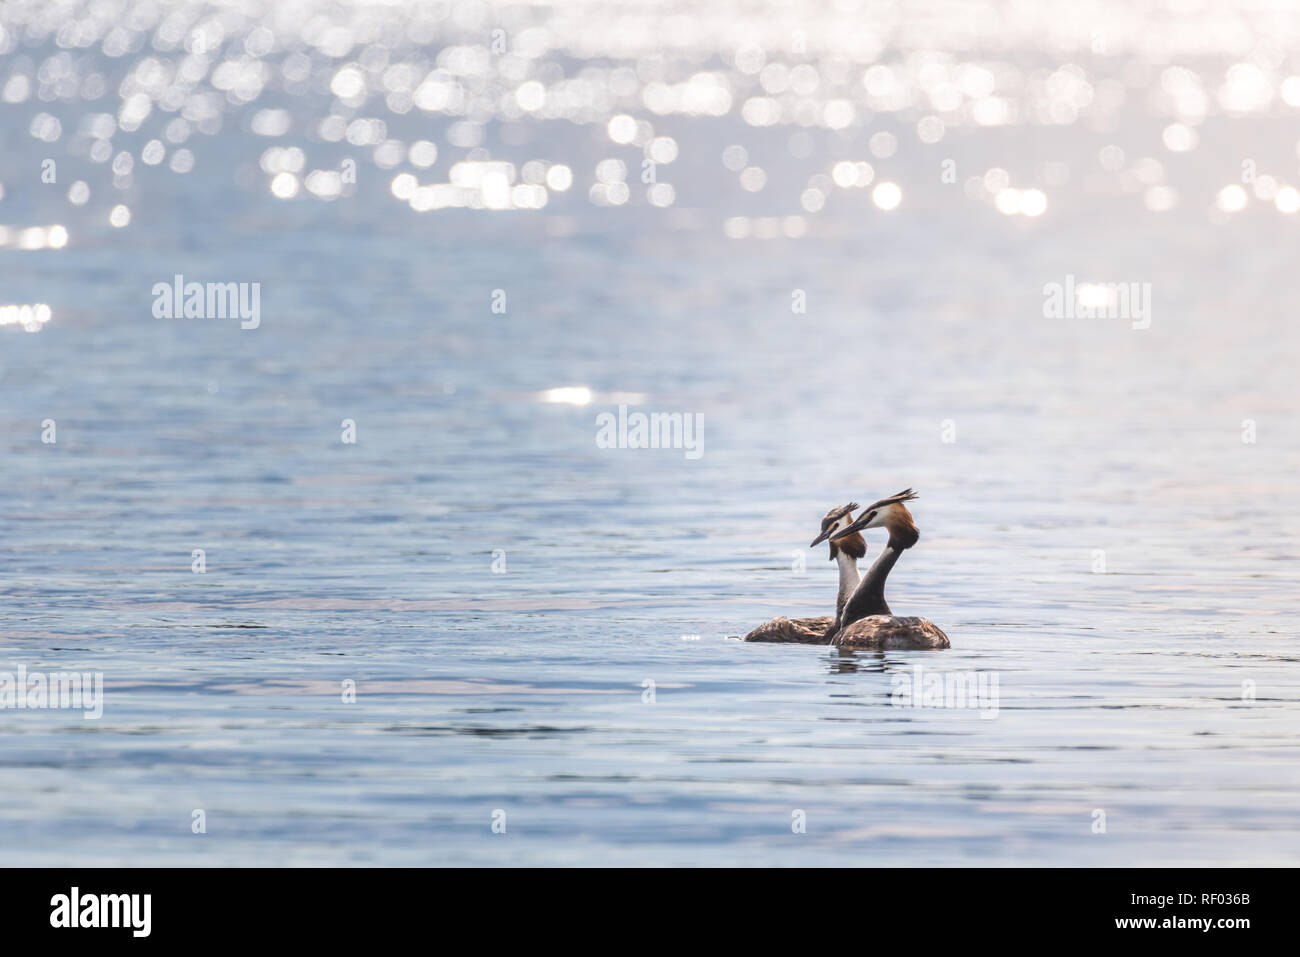 Two grebes (podiceps cristatus) are swimming on a lake while enjoying the late afternoon sun. - Stock Image